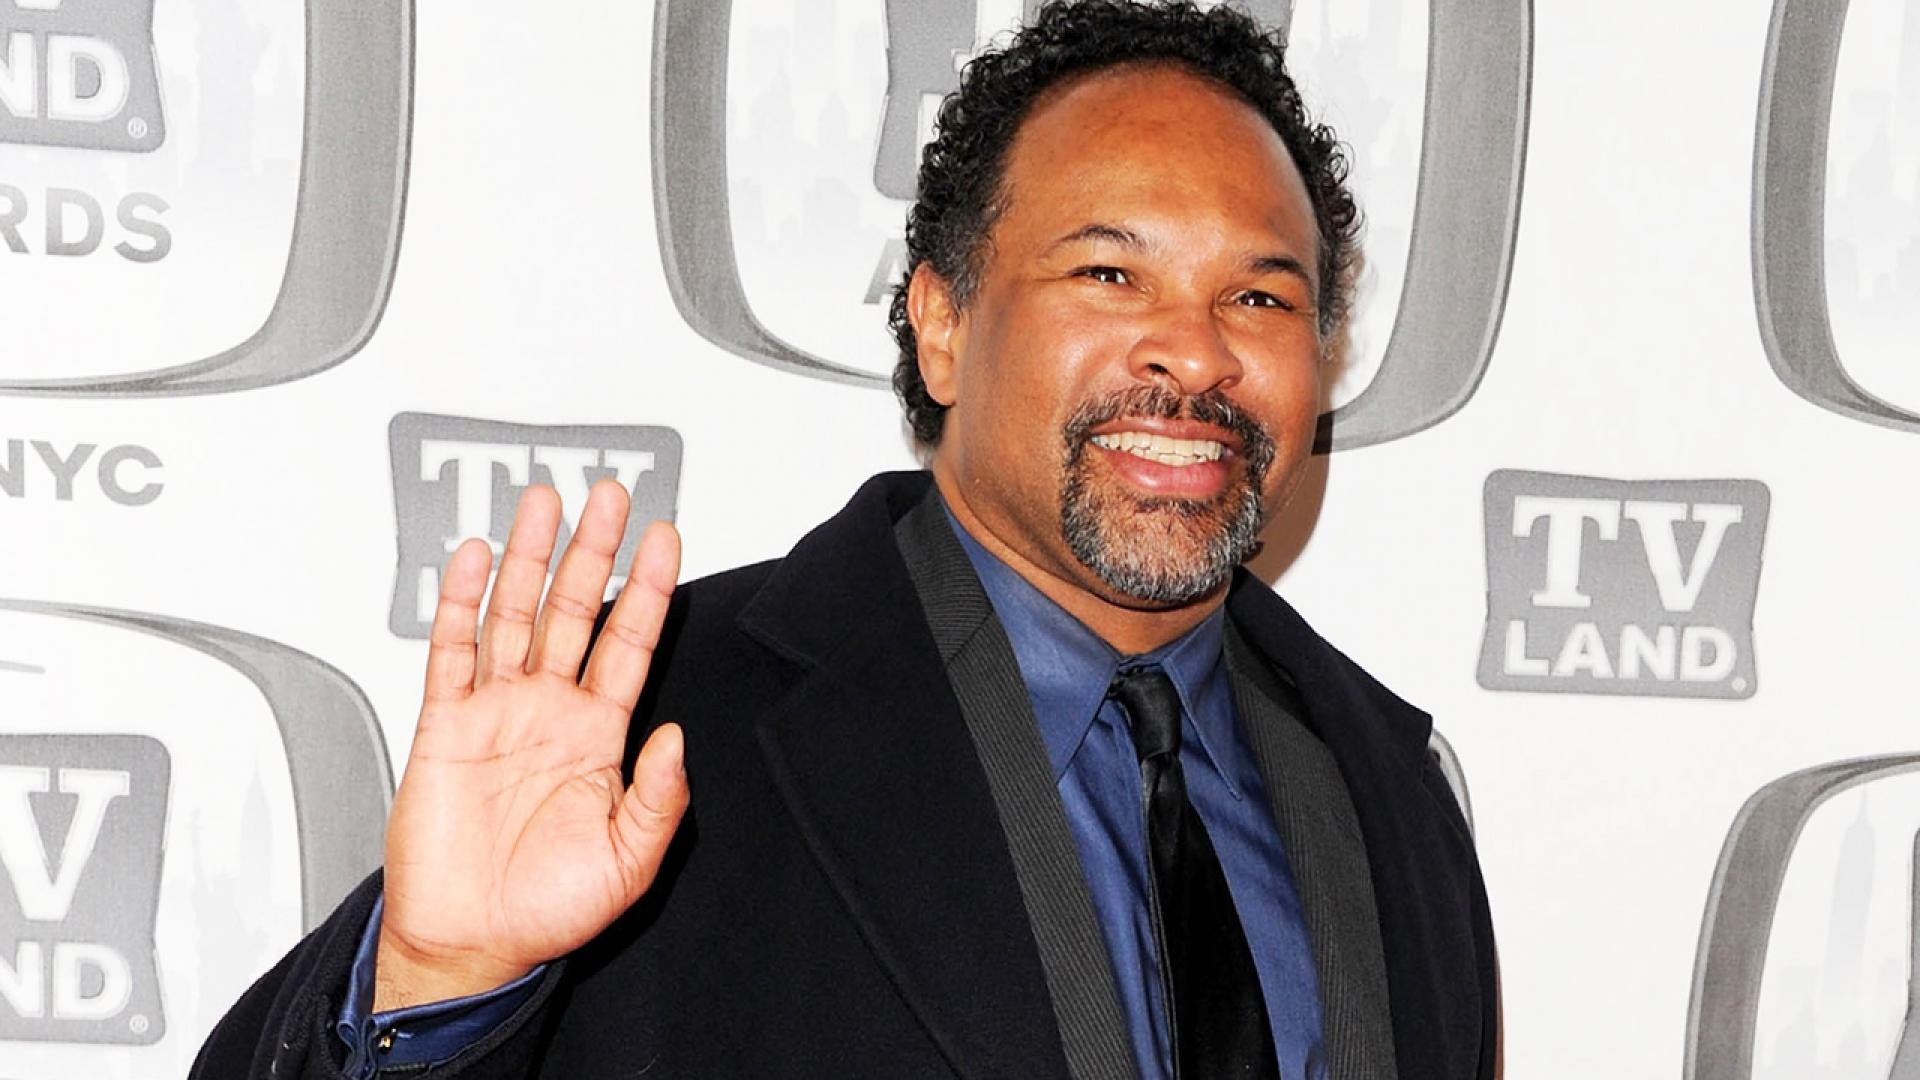 Geoffrey Owens, 51, says he's happy about all the support he's received from the acting community.